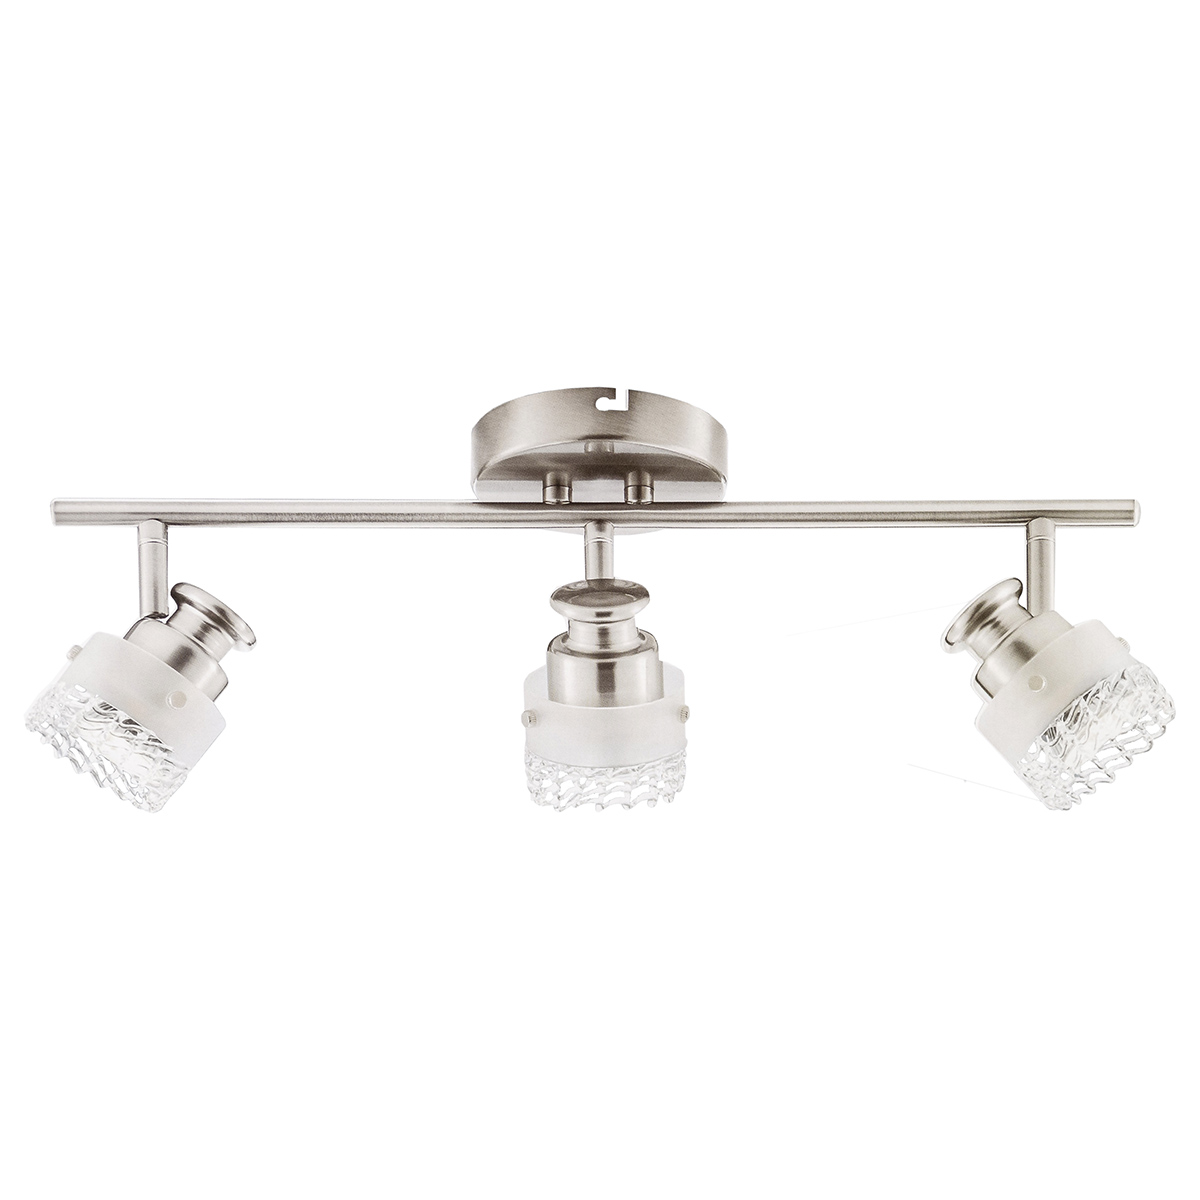 Catalina 3-Light Track Bar, Crackle Glass Shades, Brushed Nickel